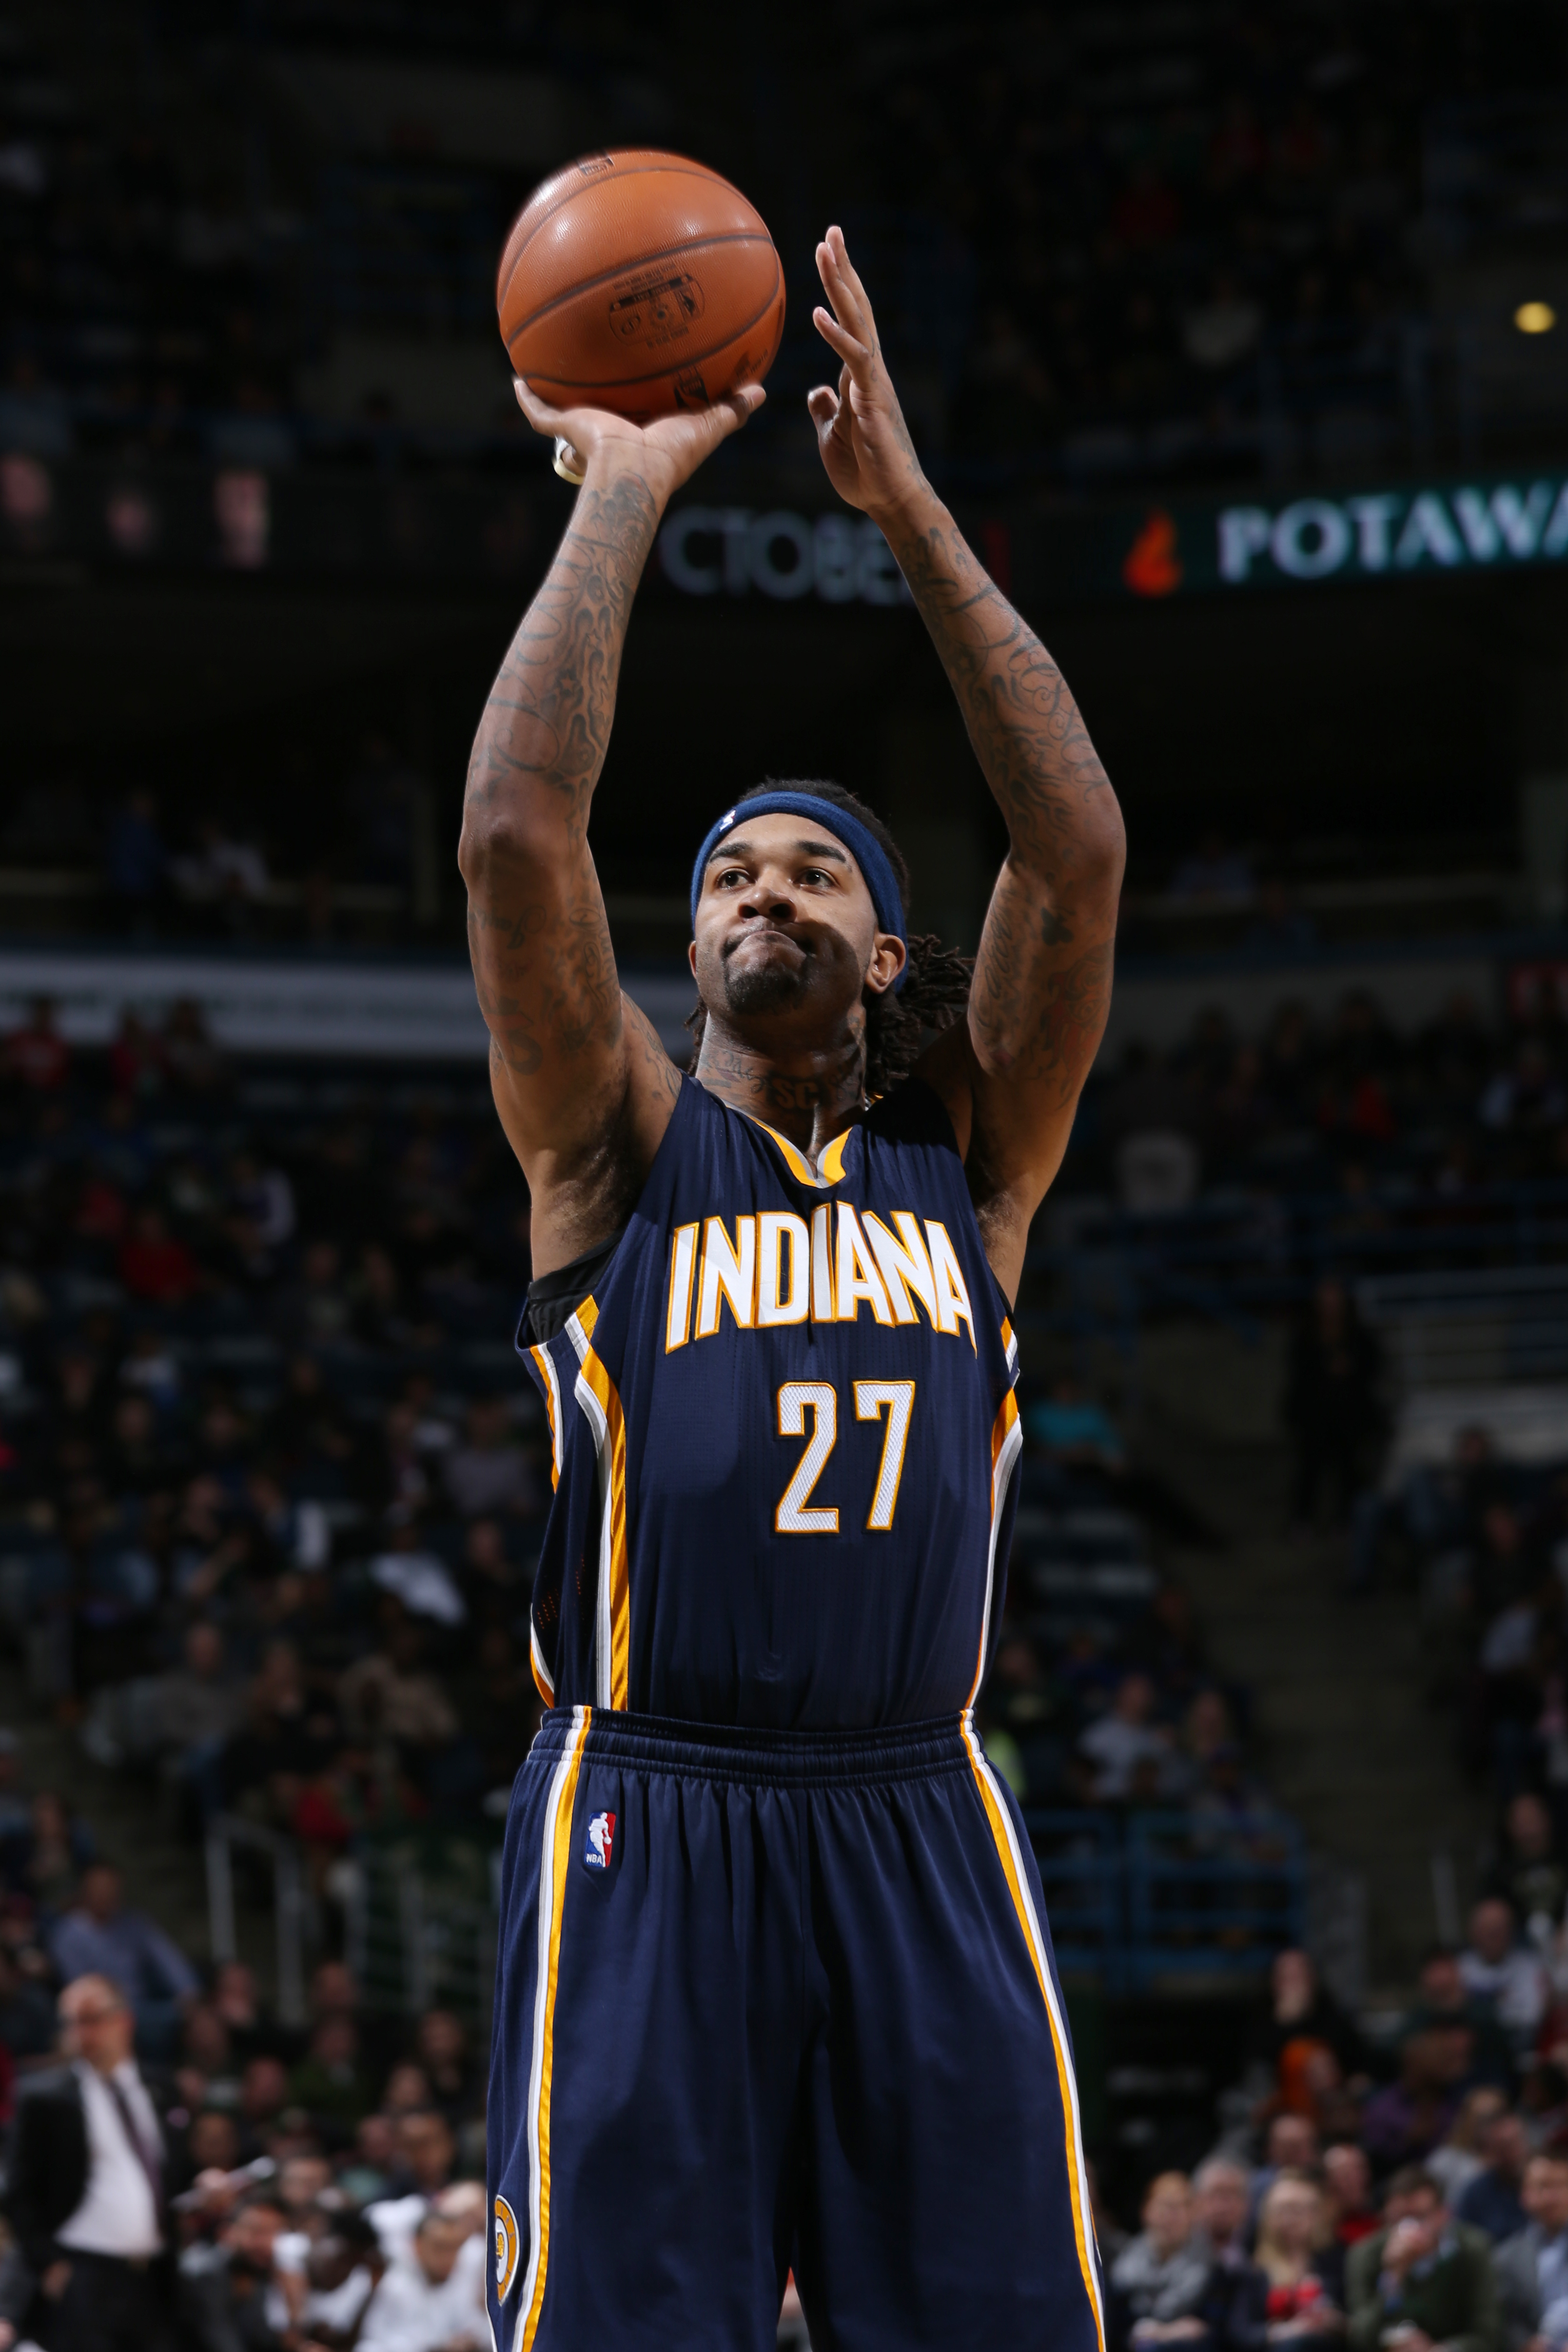 MILWAUKEE, WI  - MARCH 2: Jordan Hill #27 of the Indiana Pacers shoots against the Milwaukee Bucks during the game on March 2, 2016 at BMO Harris Bradley Center in Milwaukee, Wisconsin. (Photo by Gary Dineen/NBAE via Getty Images)